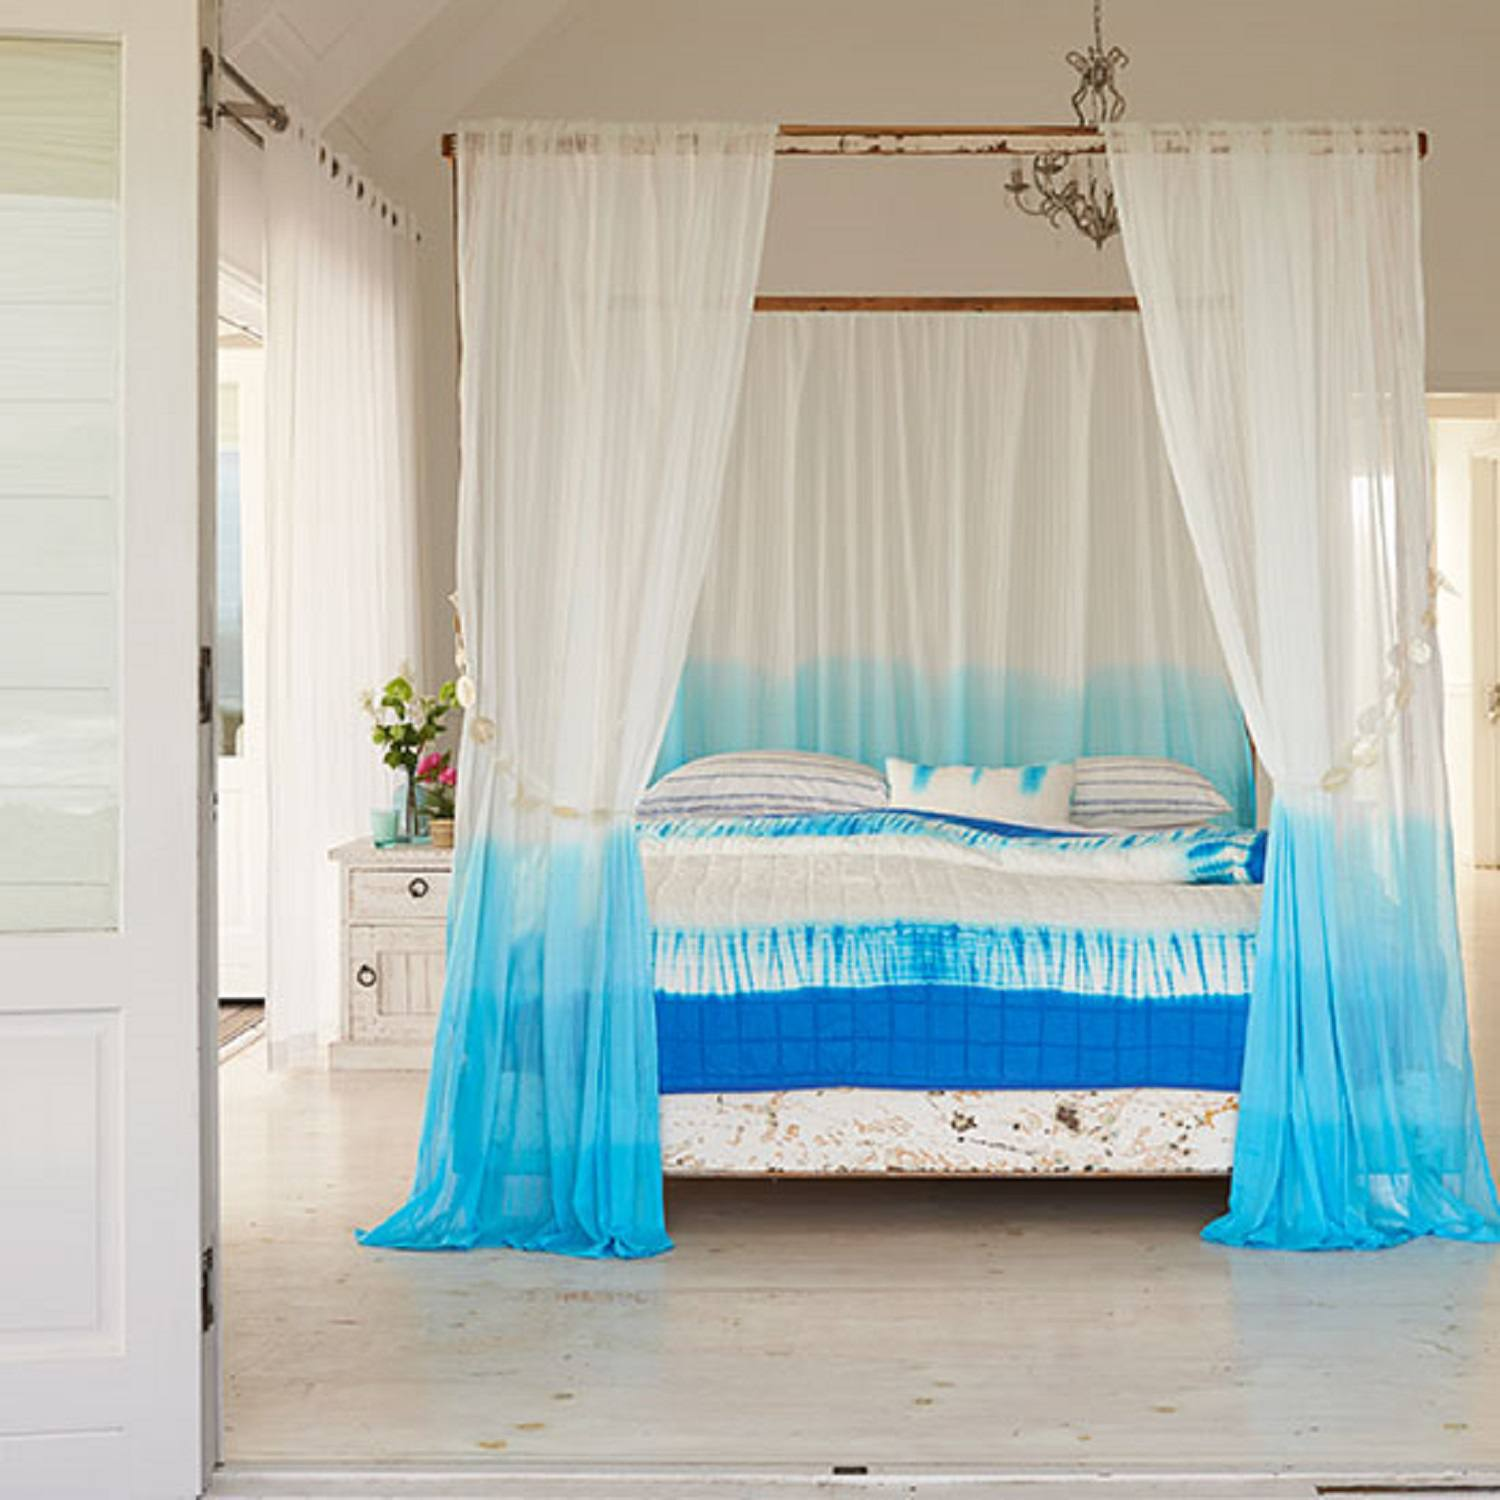 Dip-dyed canopy around bed